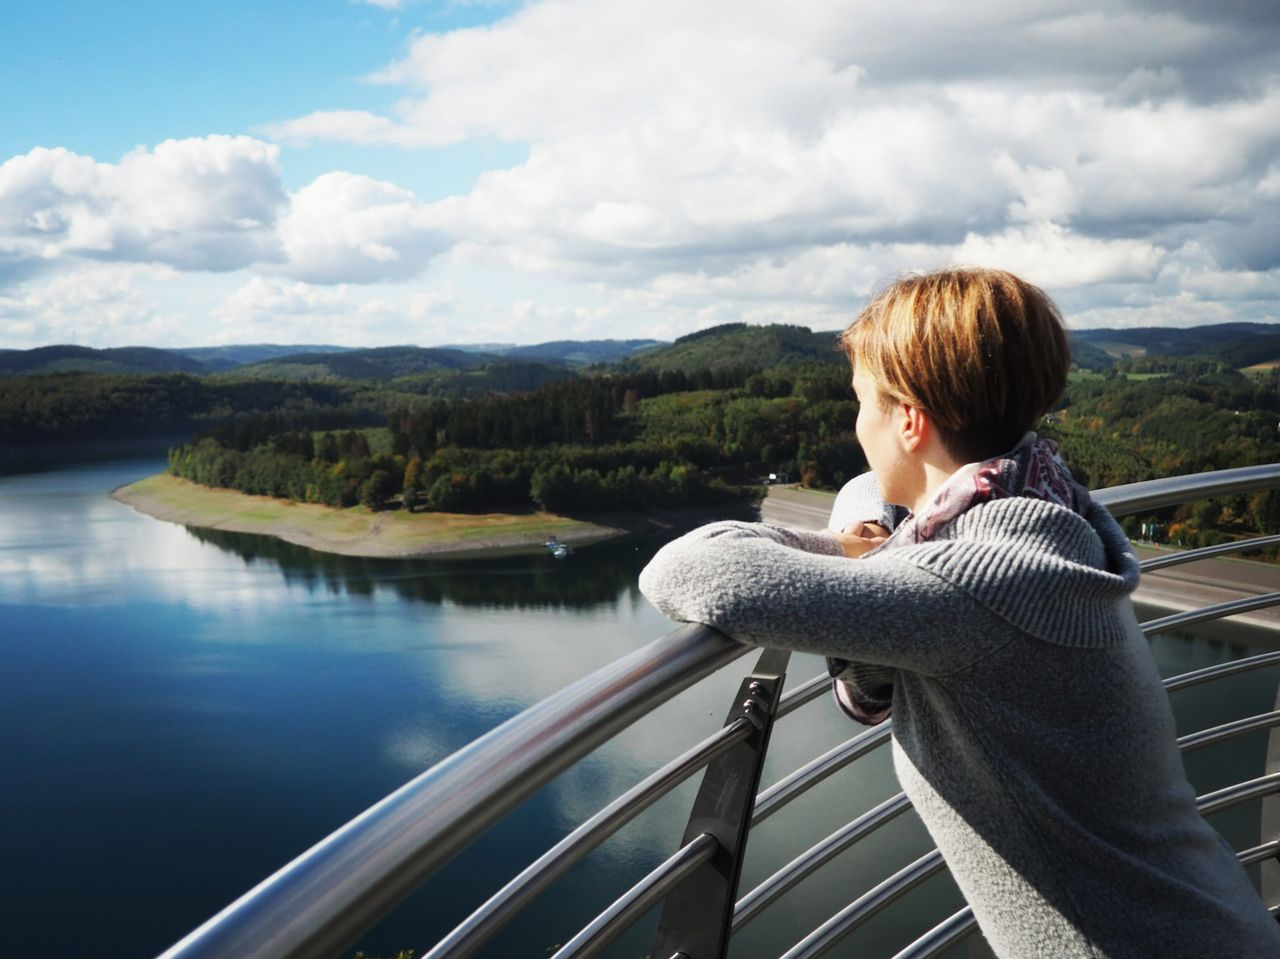 railing, real people, one person, cloud - sky, sky, leisure activity, lifestyles, nature, water, day, mountain, casual clothing, beauty in nature, river, looking at view, architecture, scenics - nature, outdoors, hairstyle